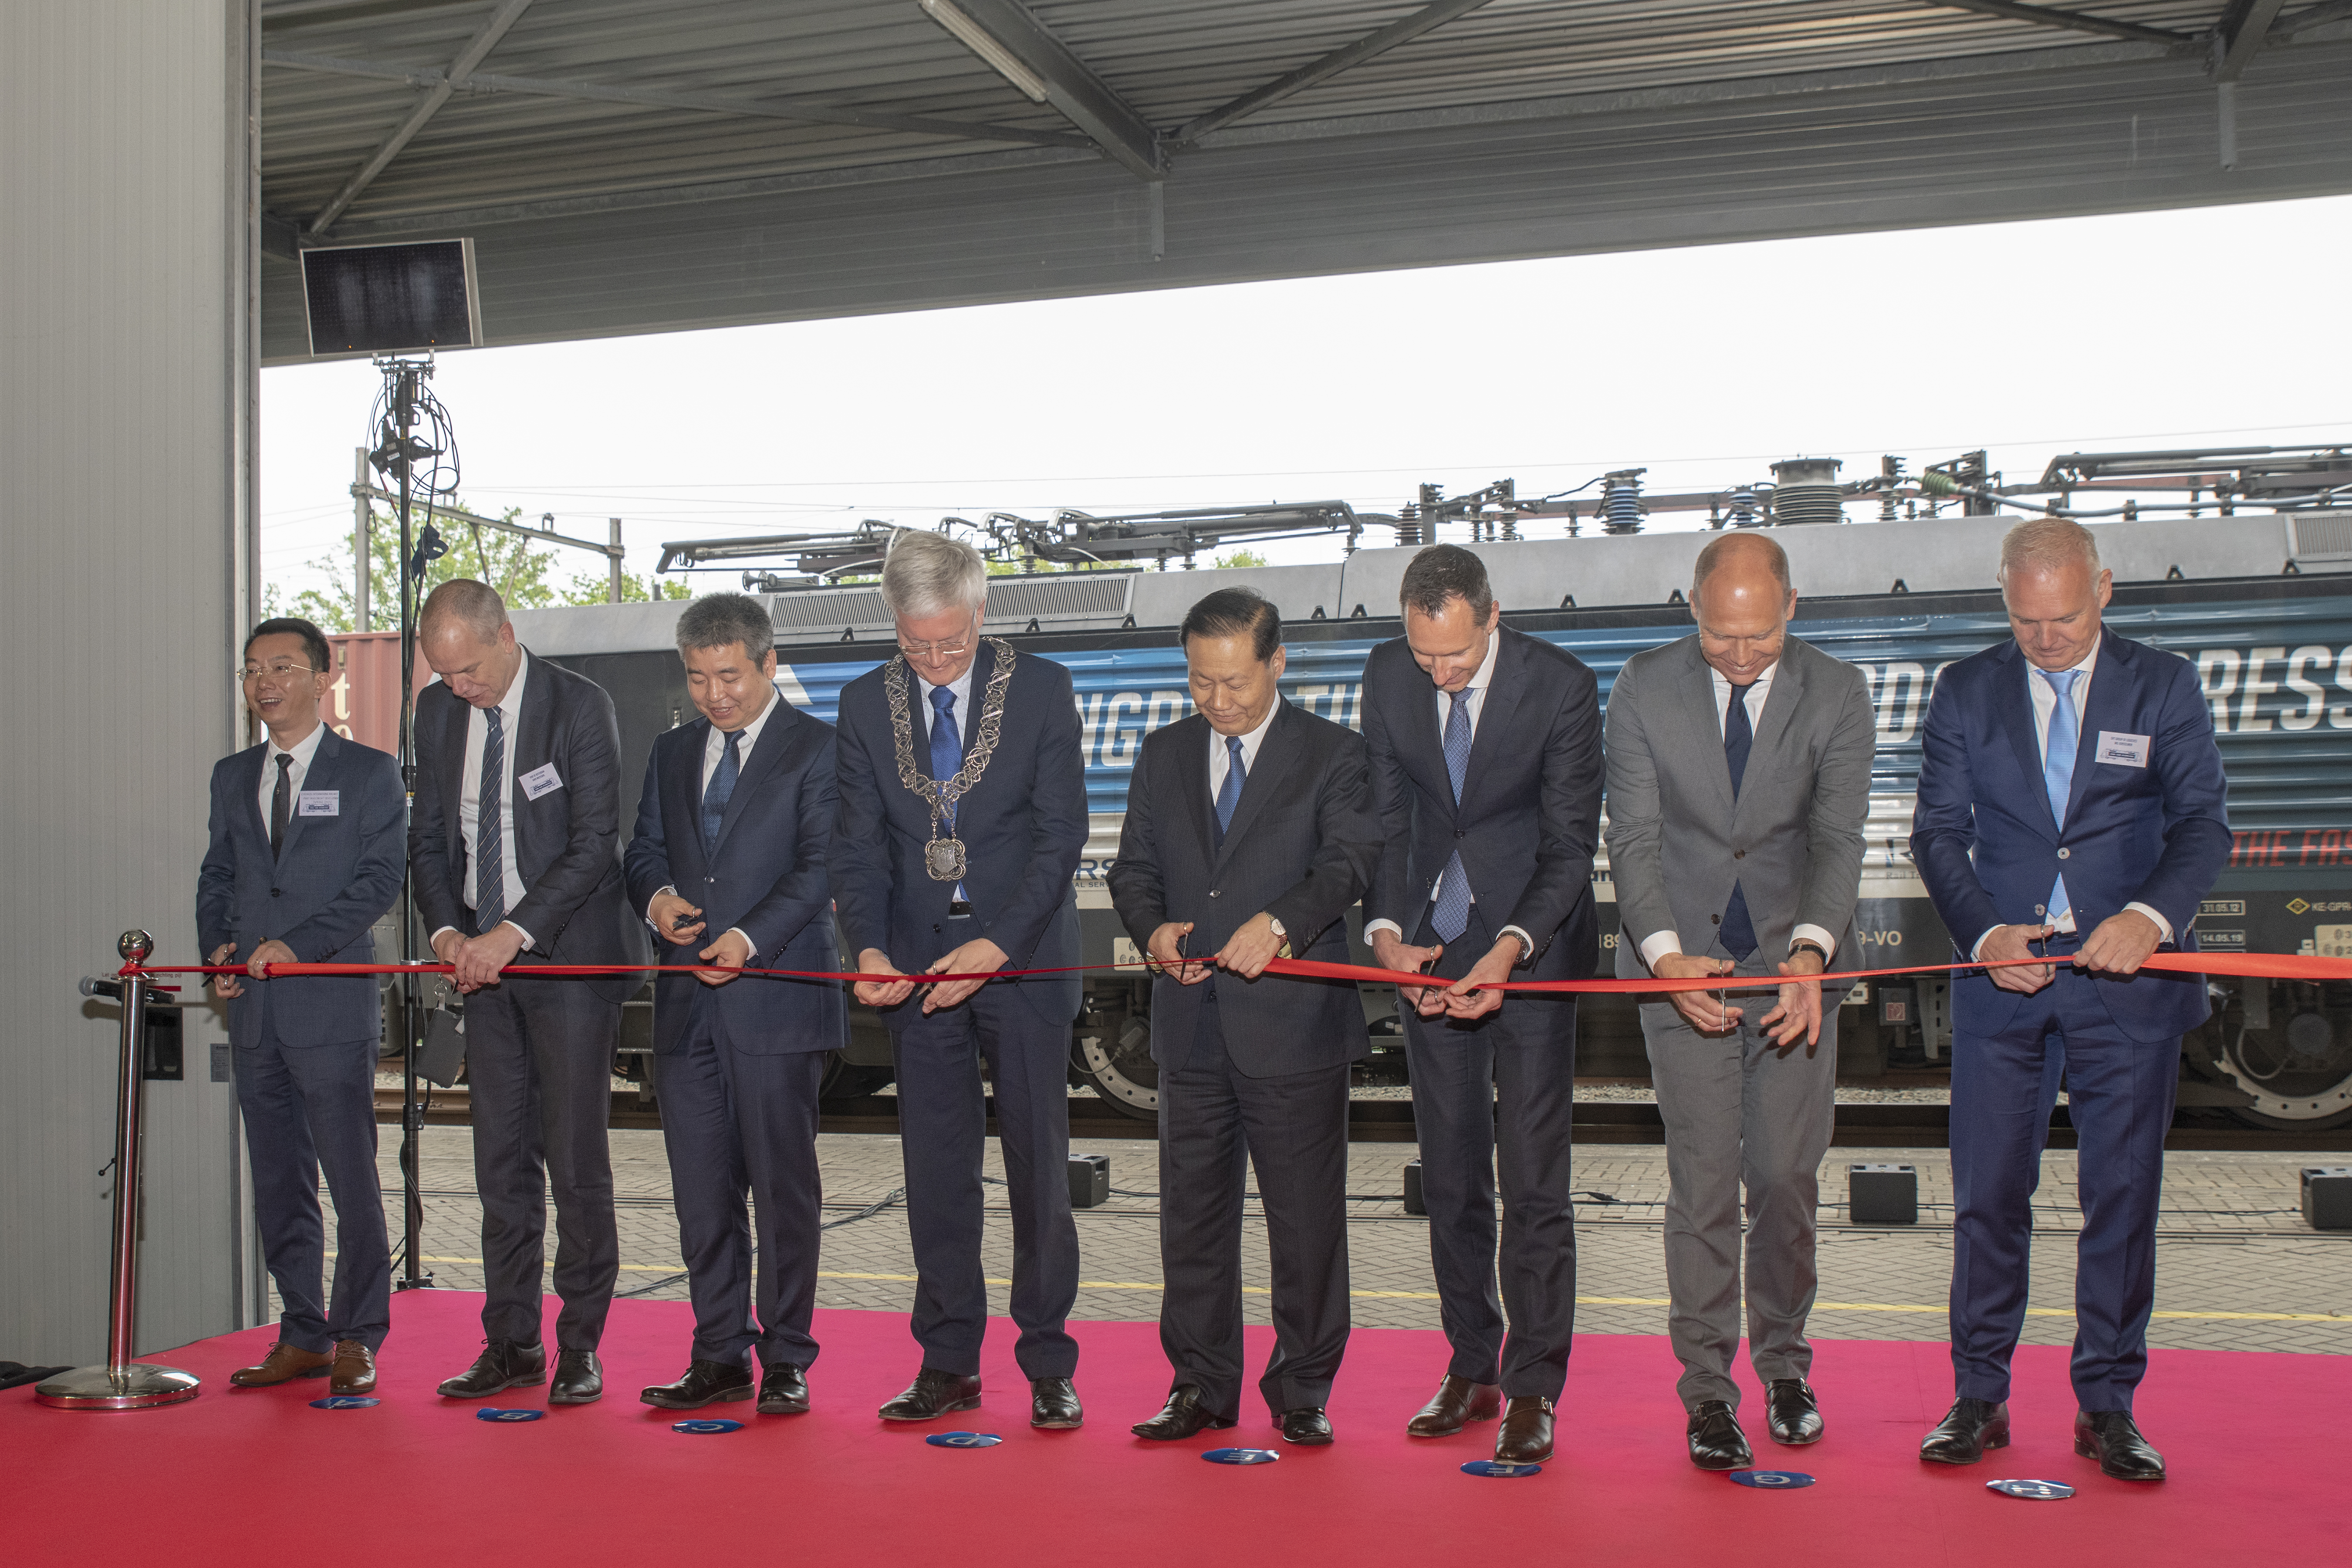 Ribbon cutting for the departure of the Tilburg-Chengdu Express